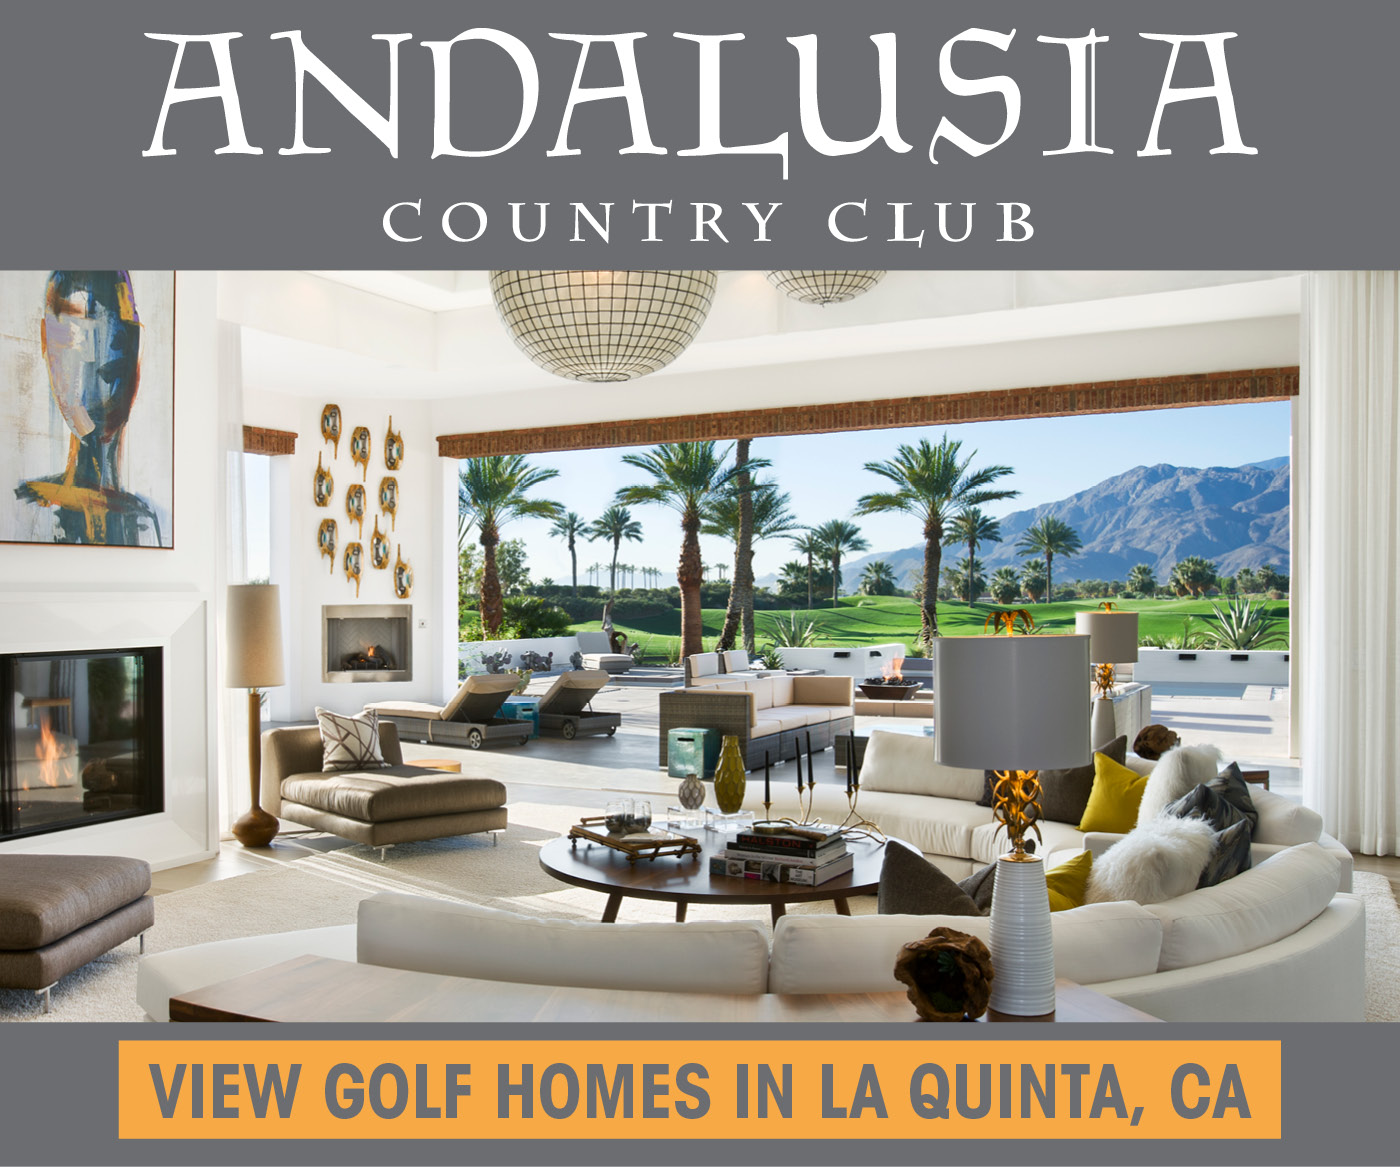 Andalusia Country Club